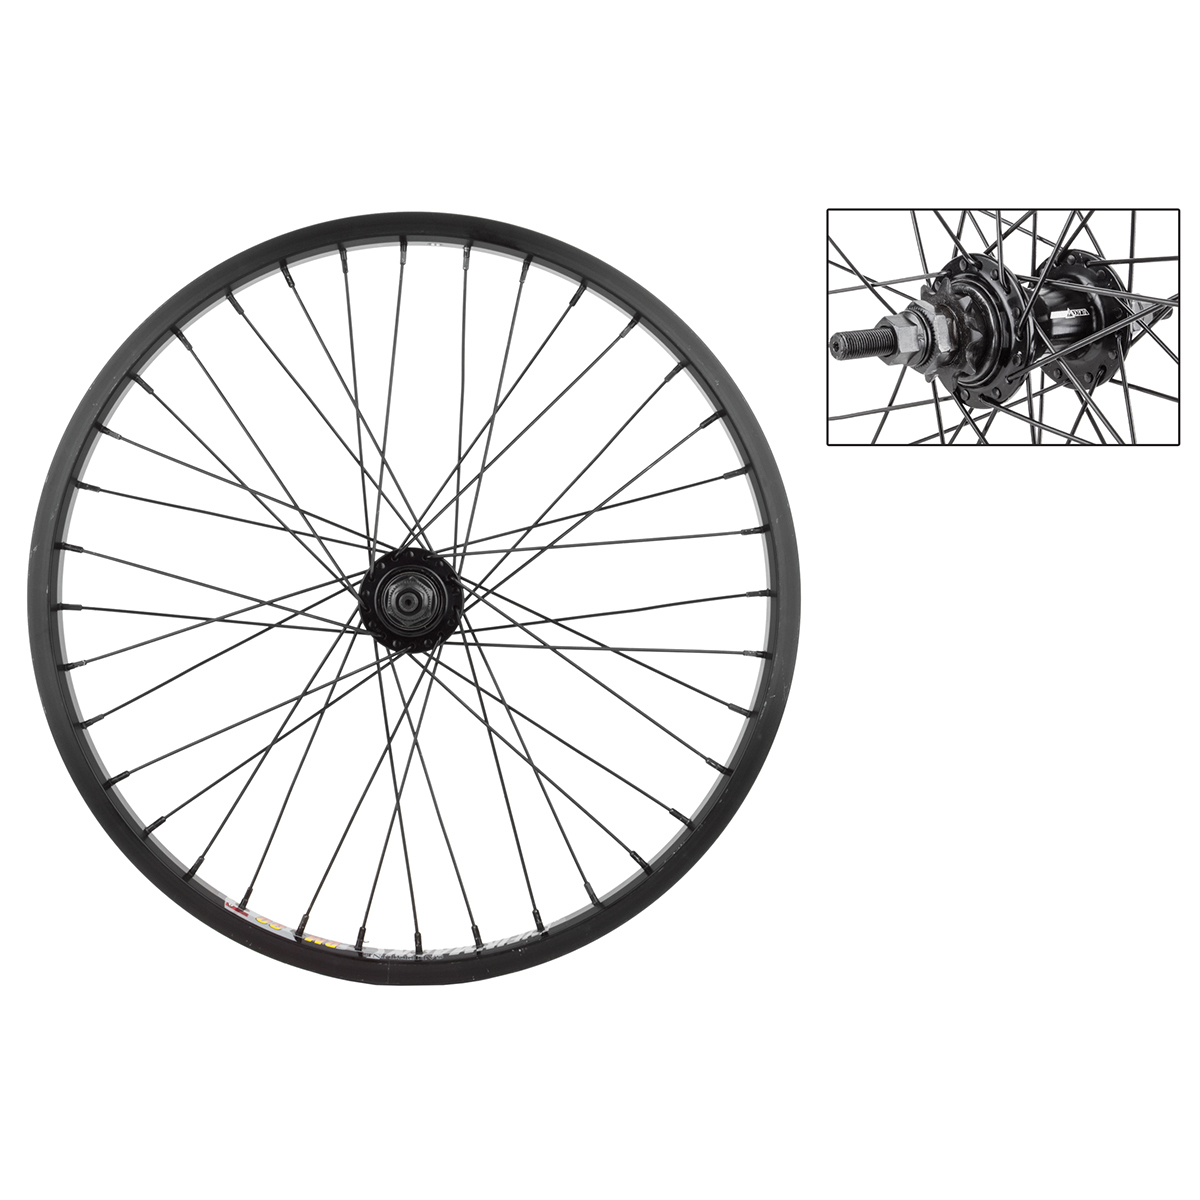 Weinmann DM30 BMX Rear Wheel 20X1.75 Black 1-Speed